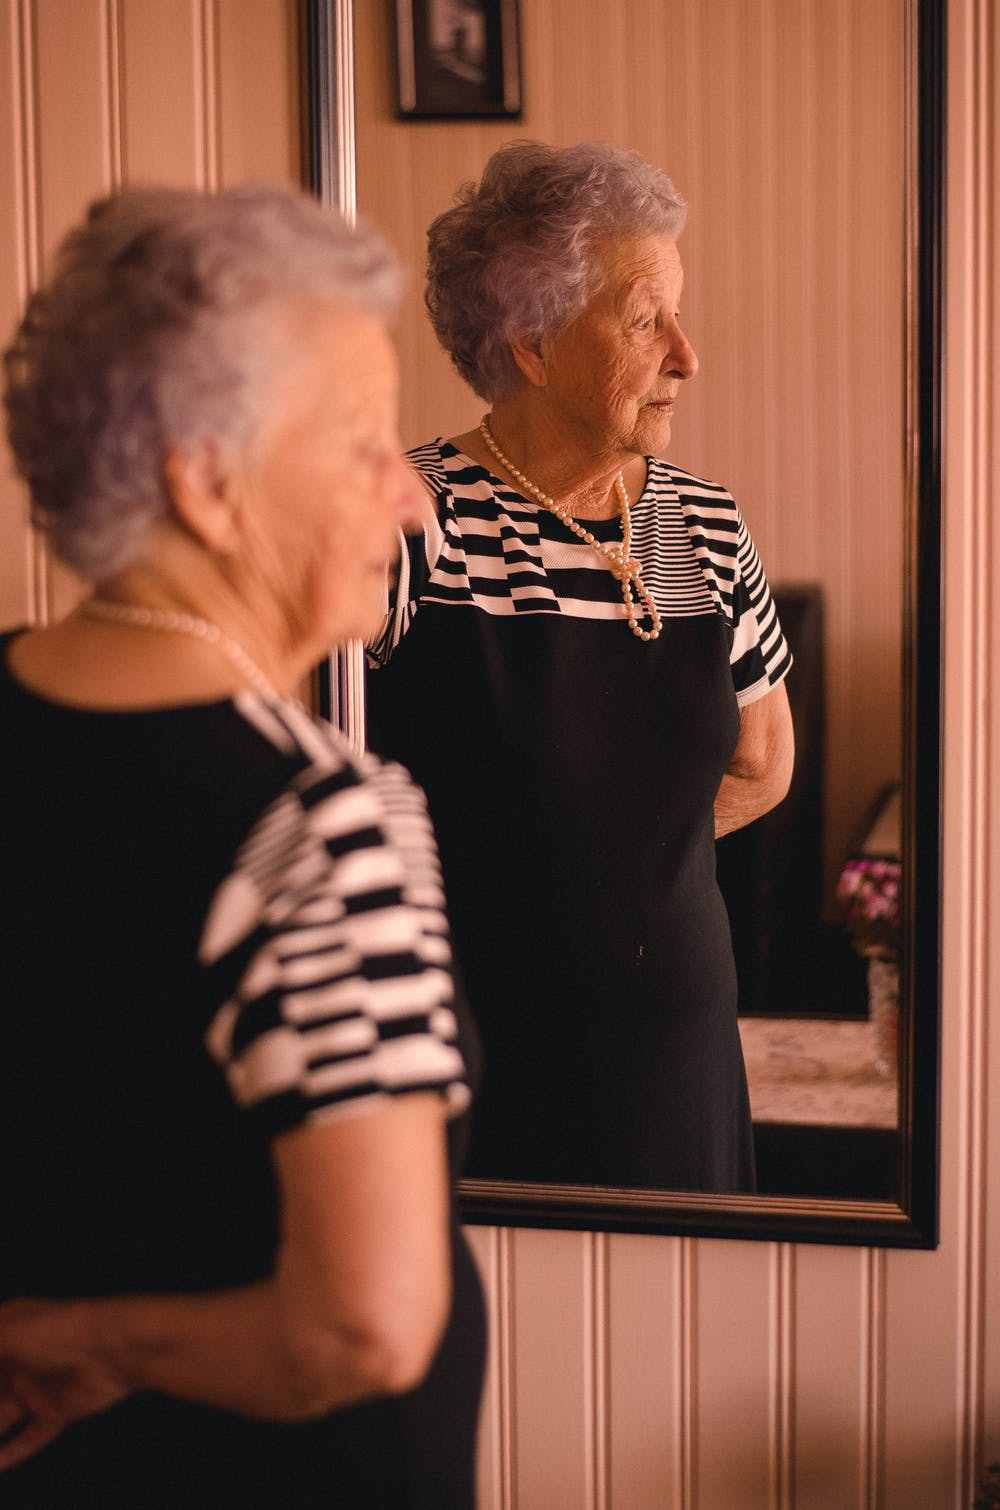 Elderly woman standing in front of a mirror. | Photo: Pexels